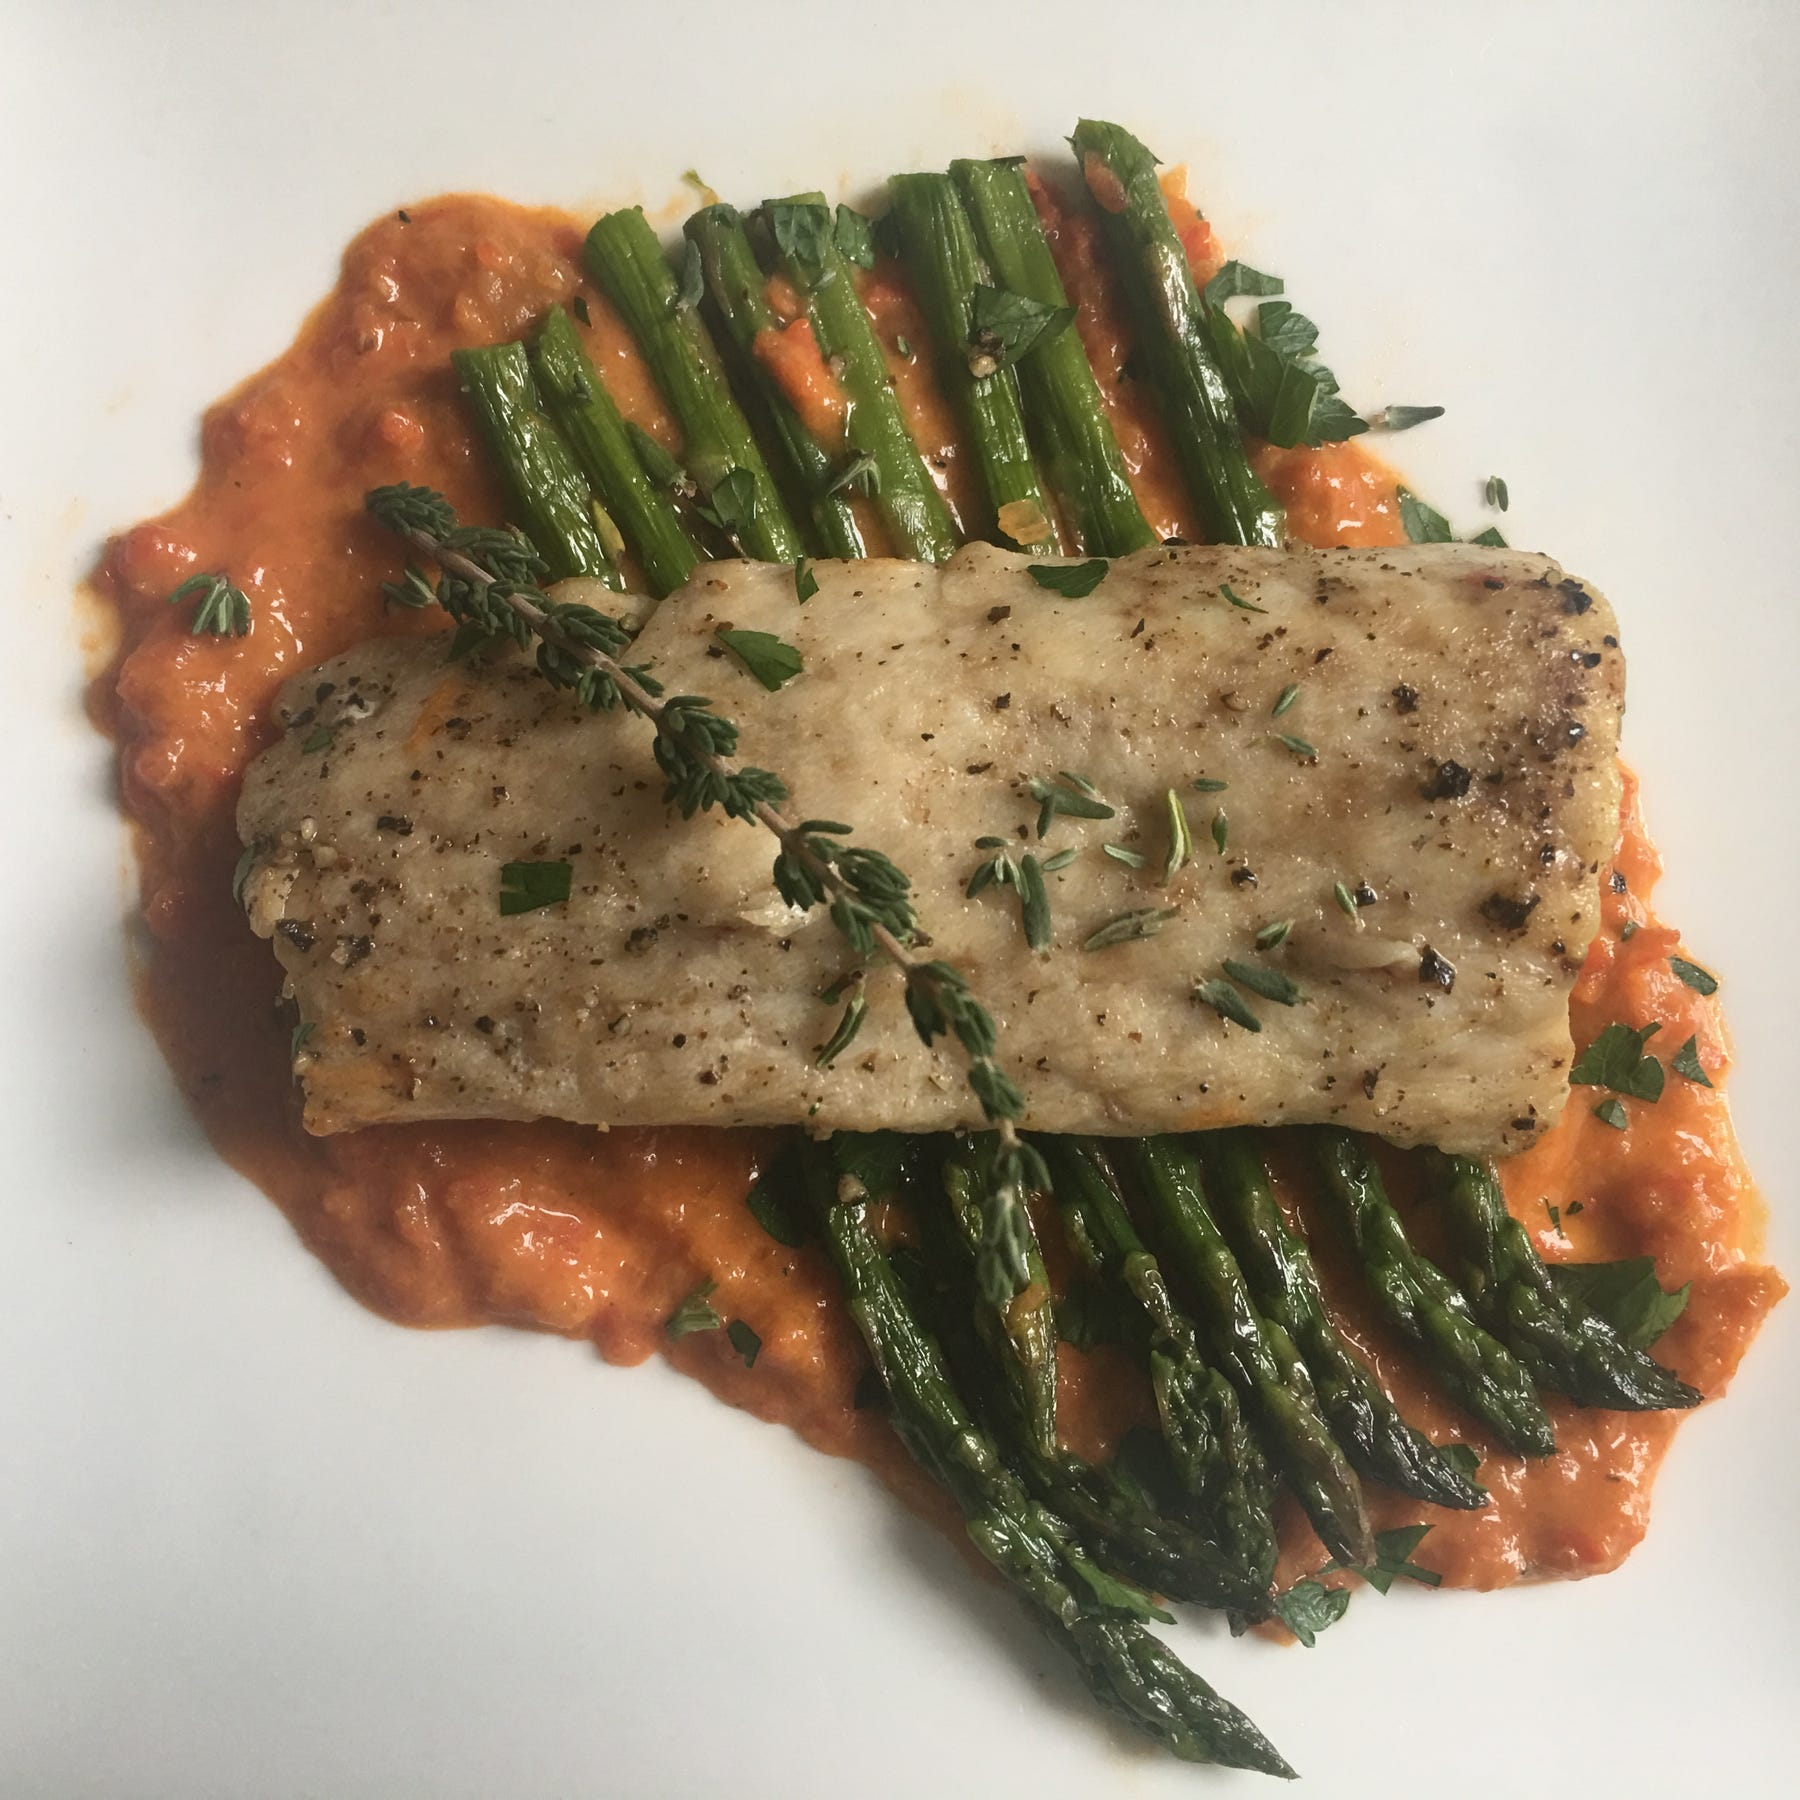 Pepper sauce complements broiled fish, asparagus in delightful spring dinner